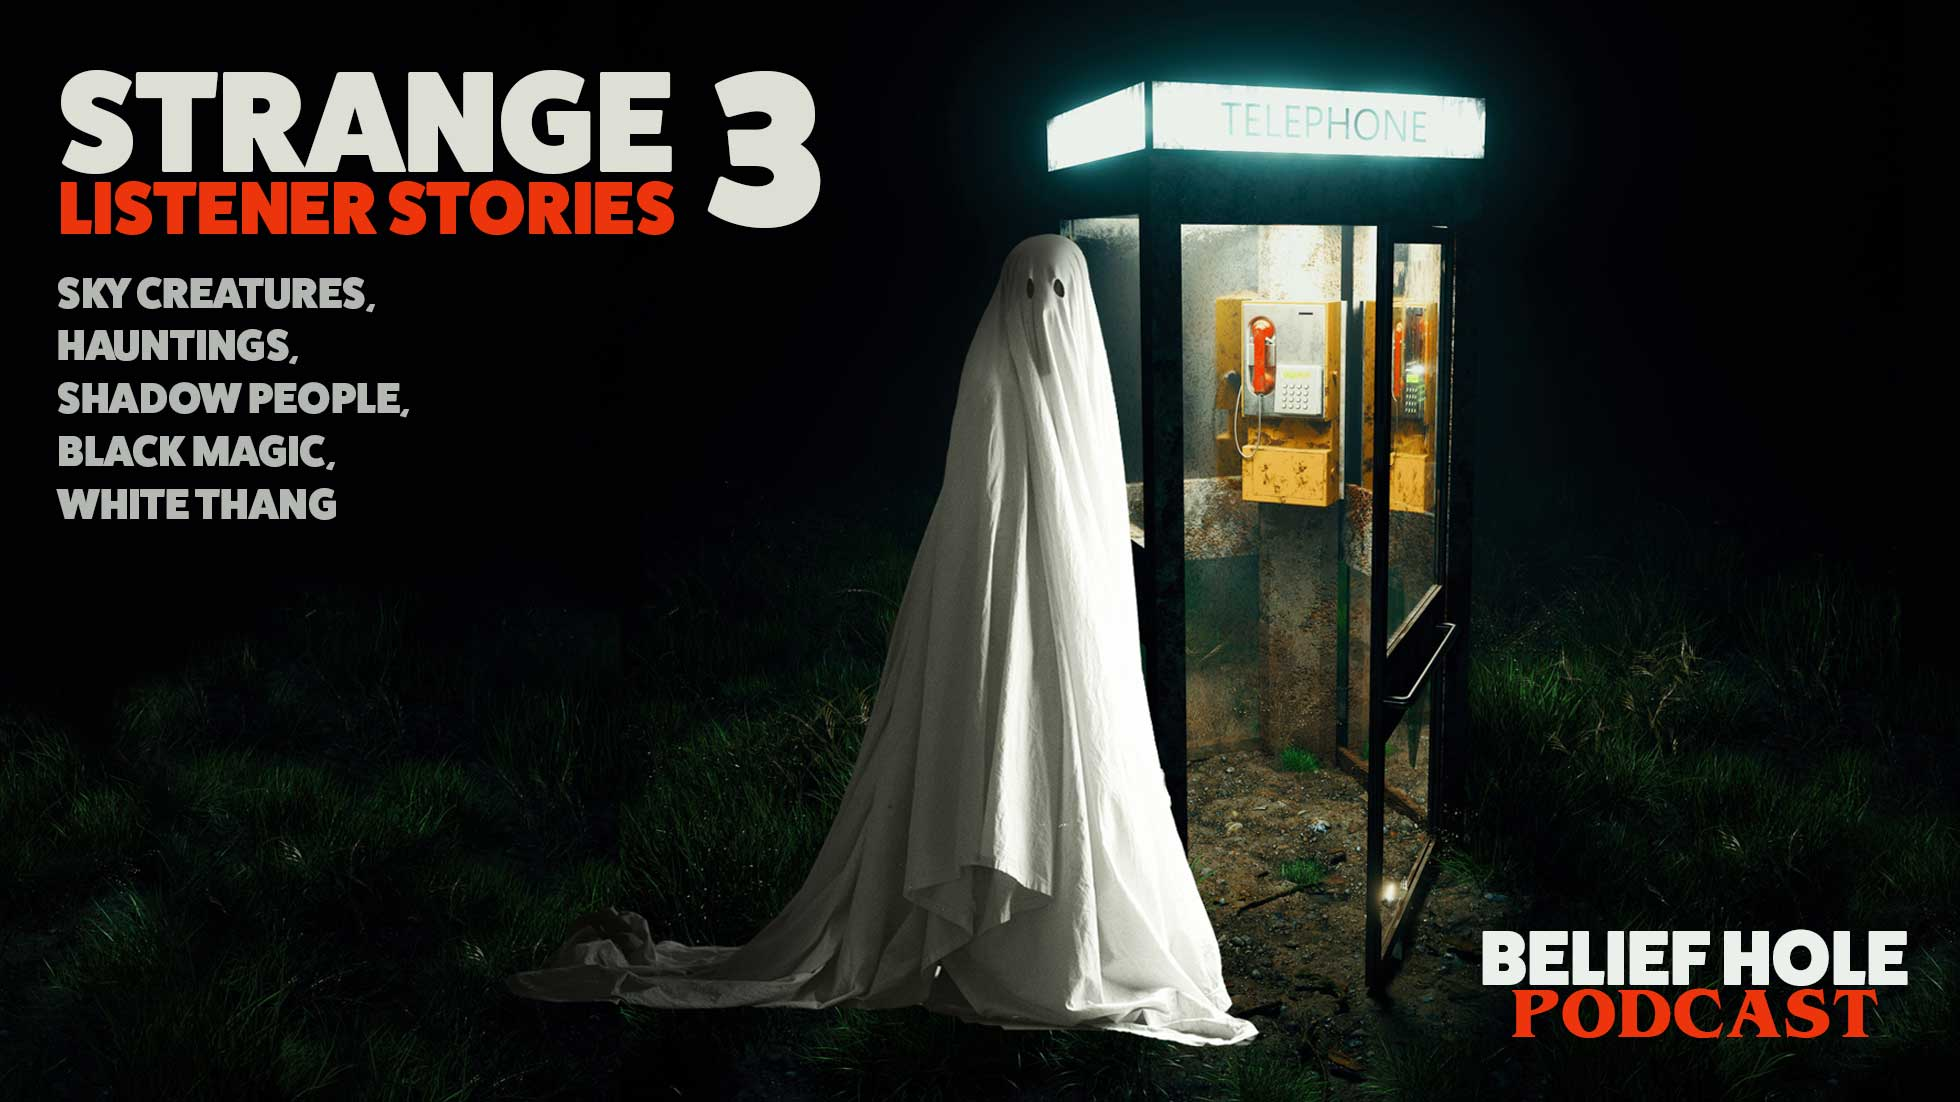 2.13- Listener Stories - Hauntings, Ghosts ,Sky Creatures - White Thang - Black Magic